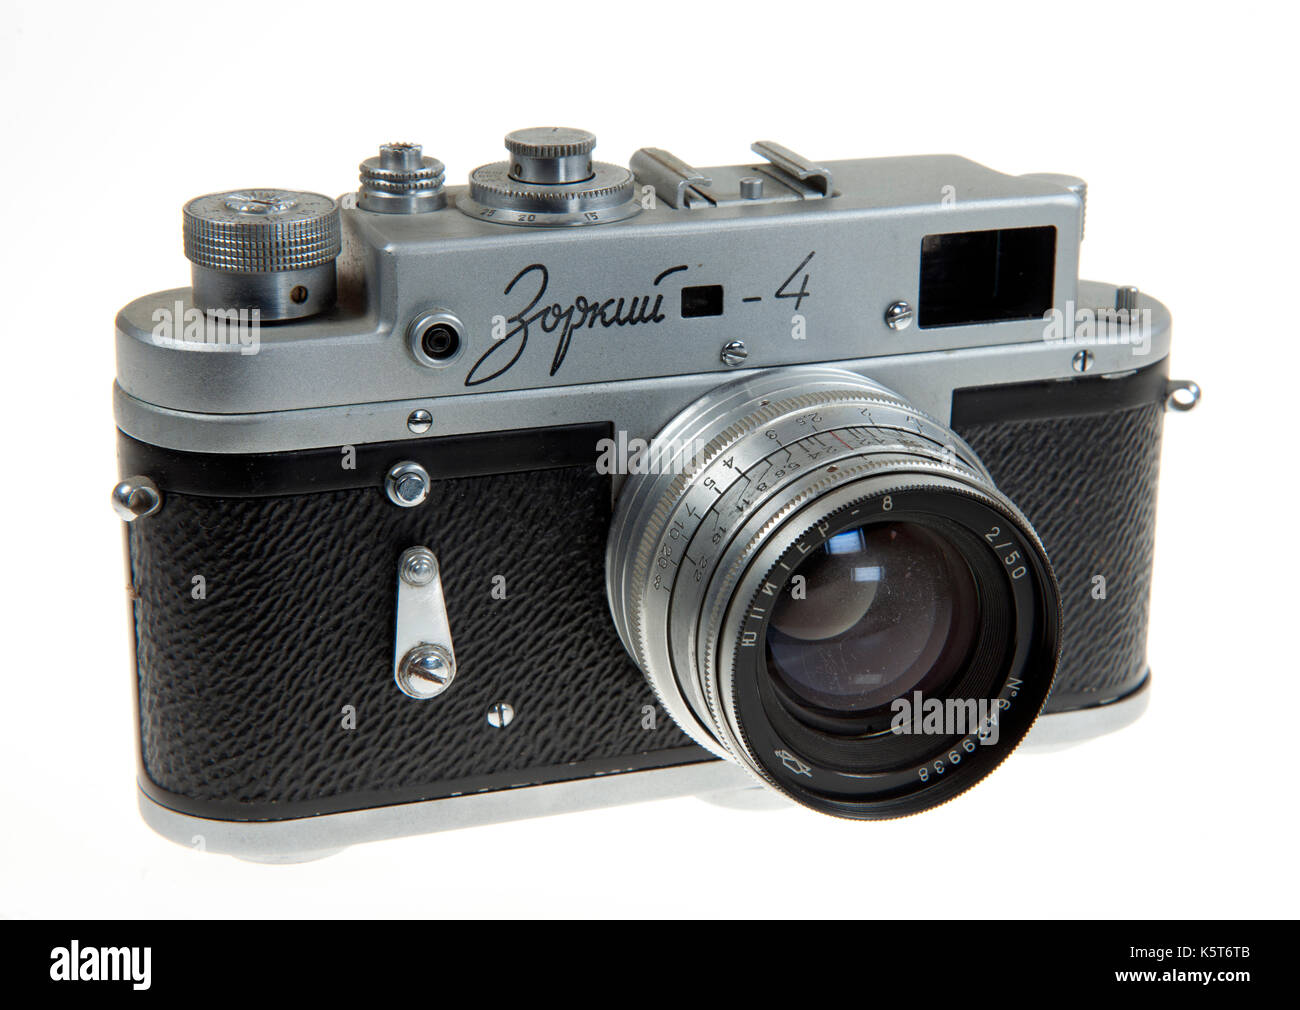 Krasnogorsk Zorki-4 35mm rangefinder camera made in Russia between 1956 and 1973 often referred to as a Russian Stock Photo